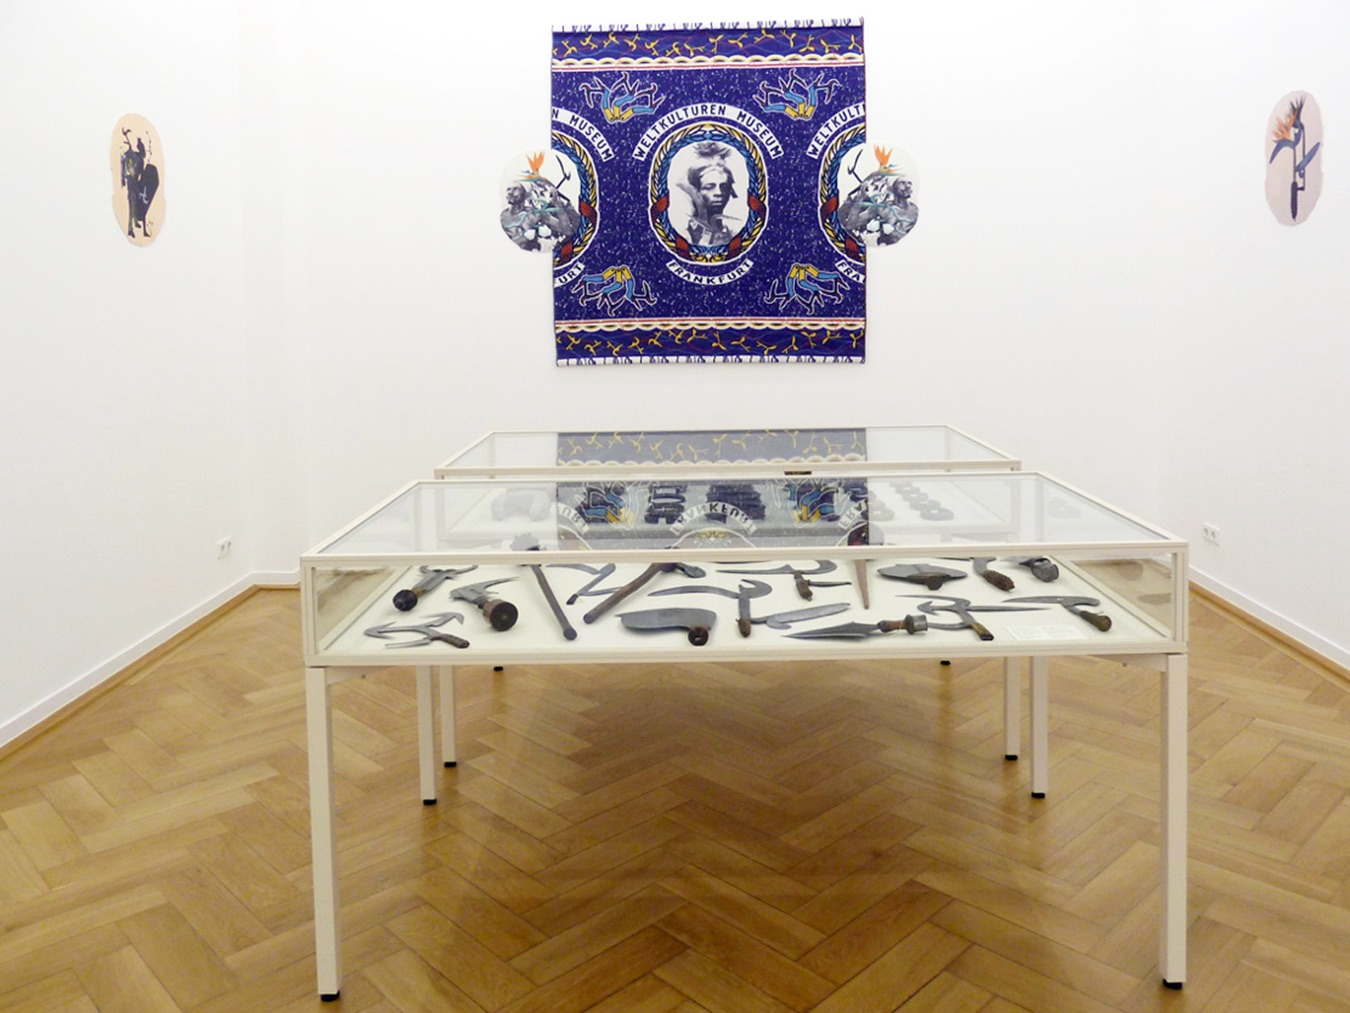 Otobong Nkanga - Object Atlas - Facing the Opponent (exhibition view), 2012